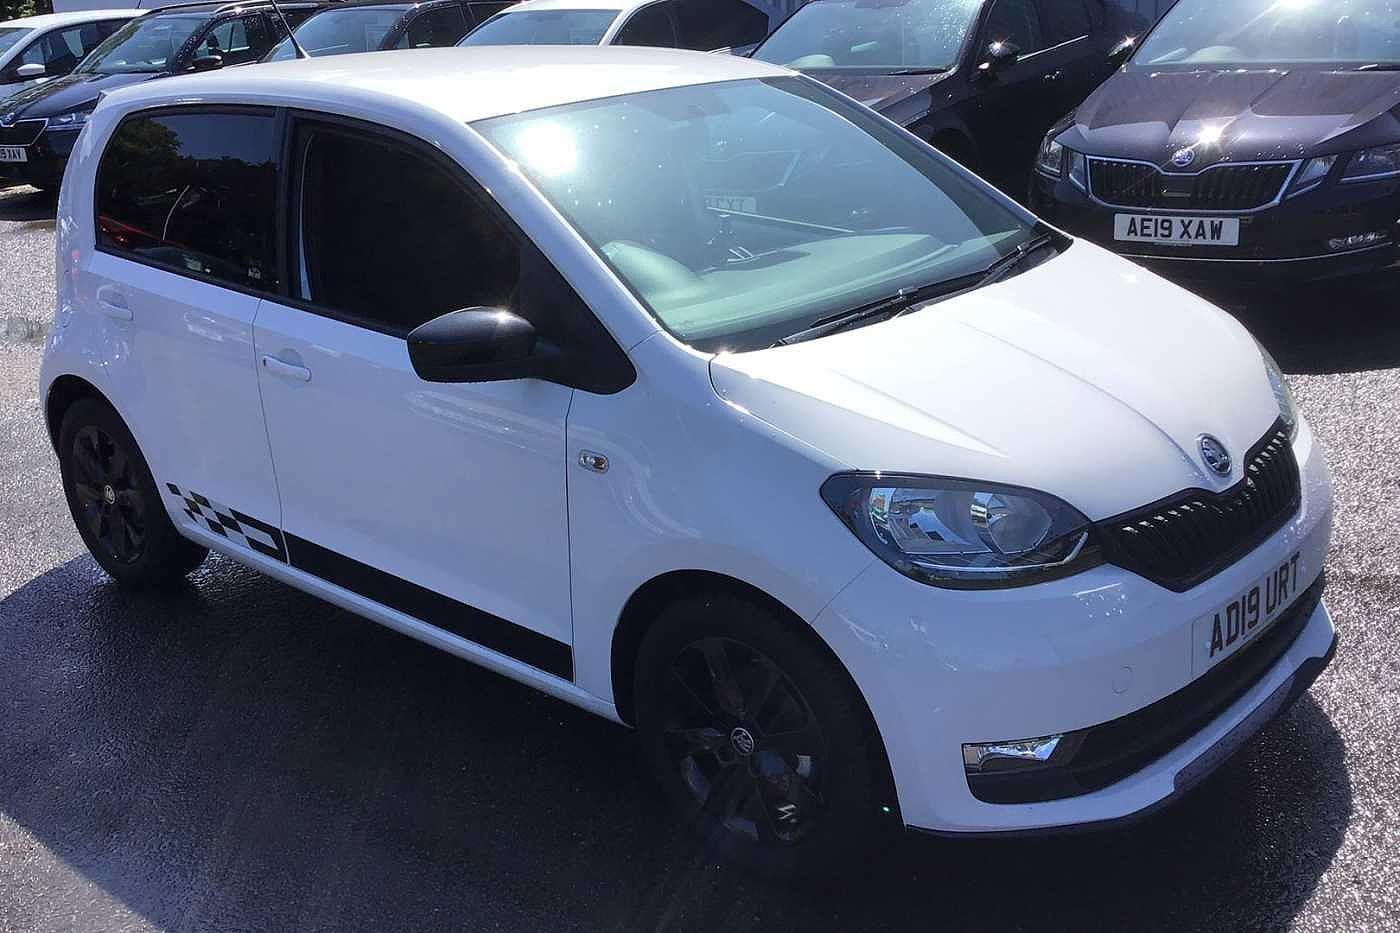 Skoda Citigo 1.0 (60ps) Monte Carlo GreenTech 5Dr Hatch Hatchback Petrol Candy White